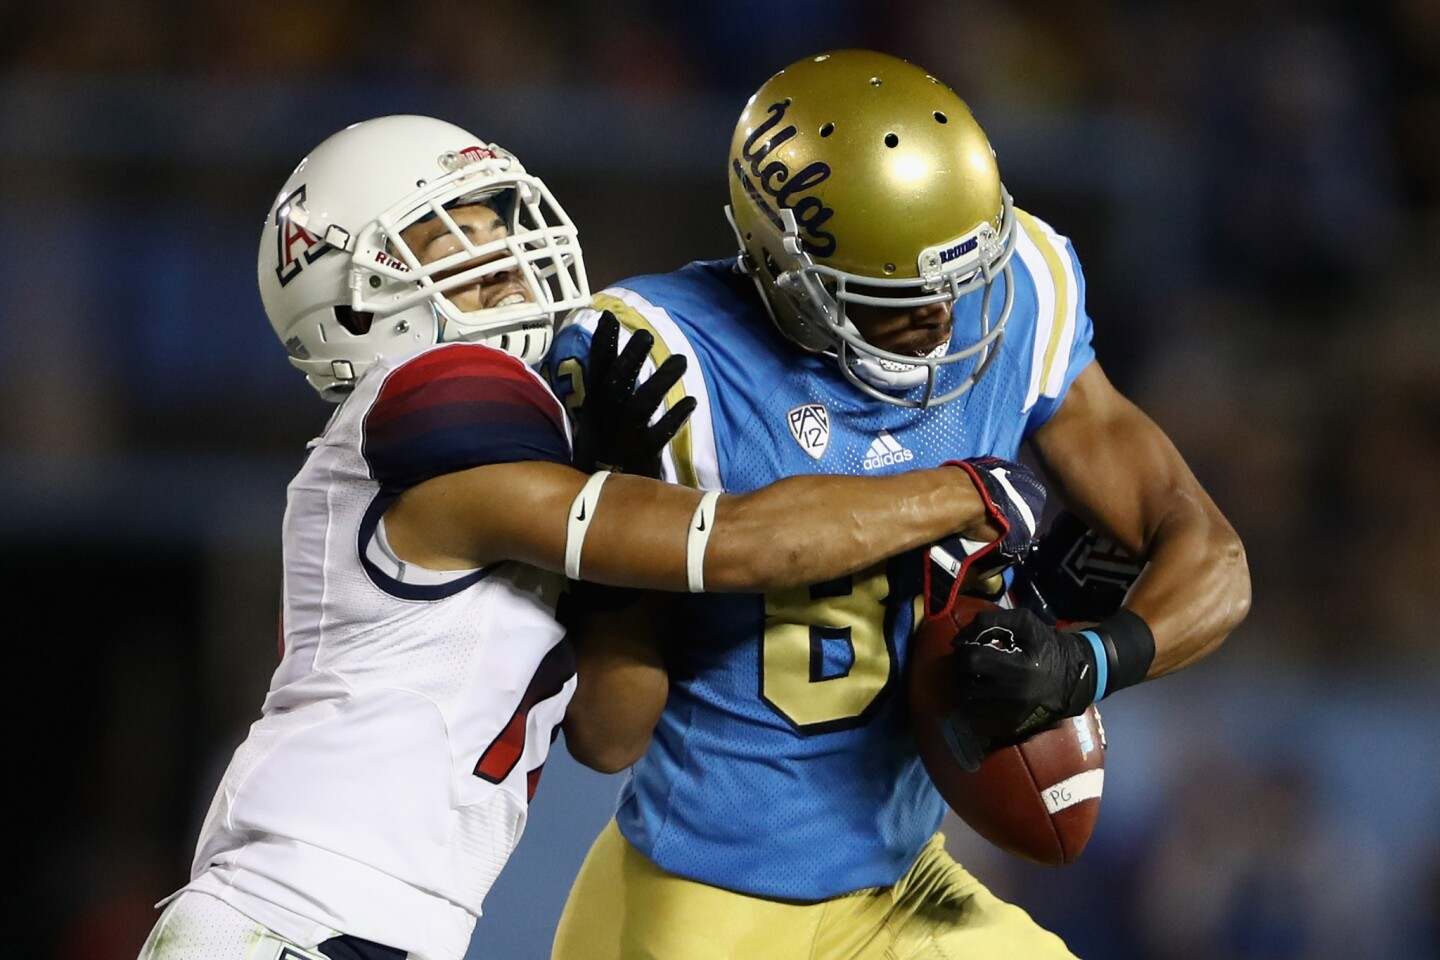 Arizona defensive back Jace Whittaker strips the ball from UCLA receiver Eldridge Massington during the first half.